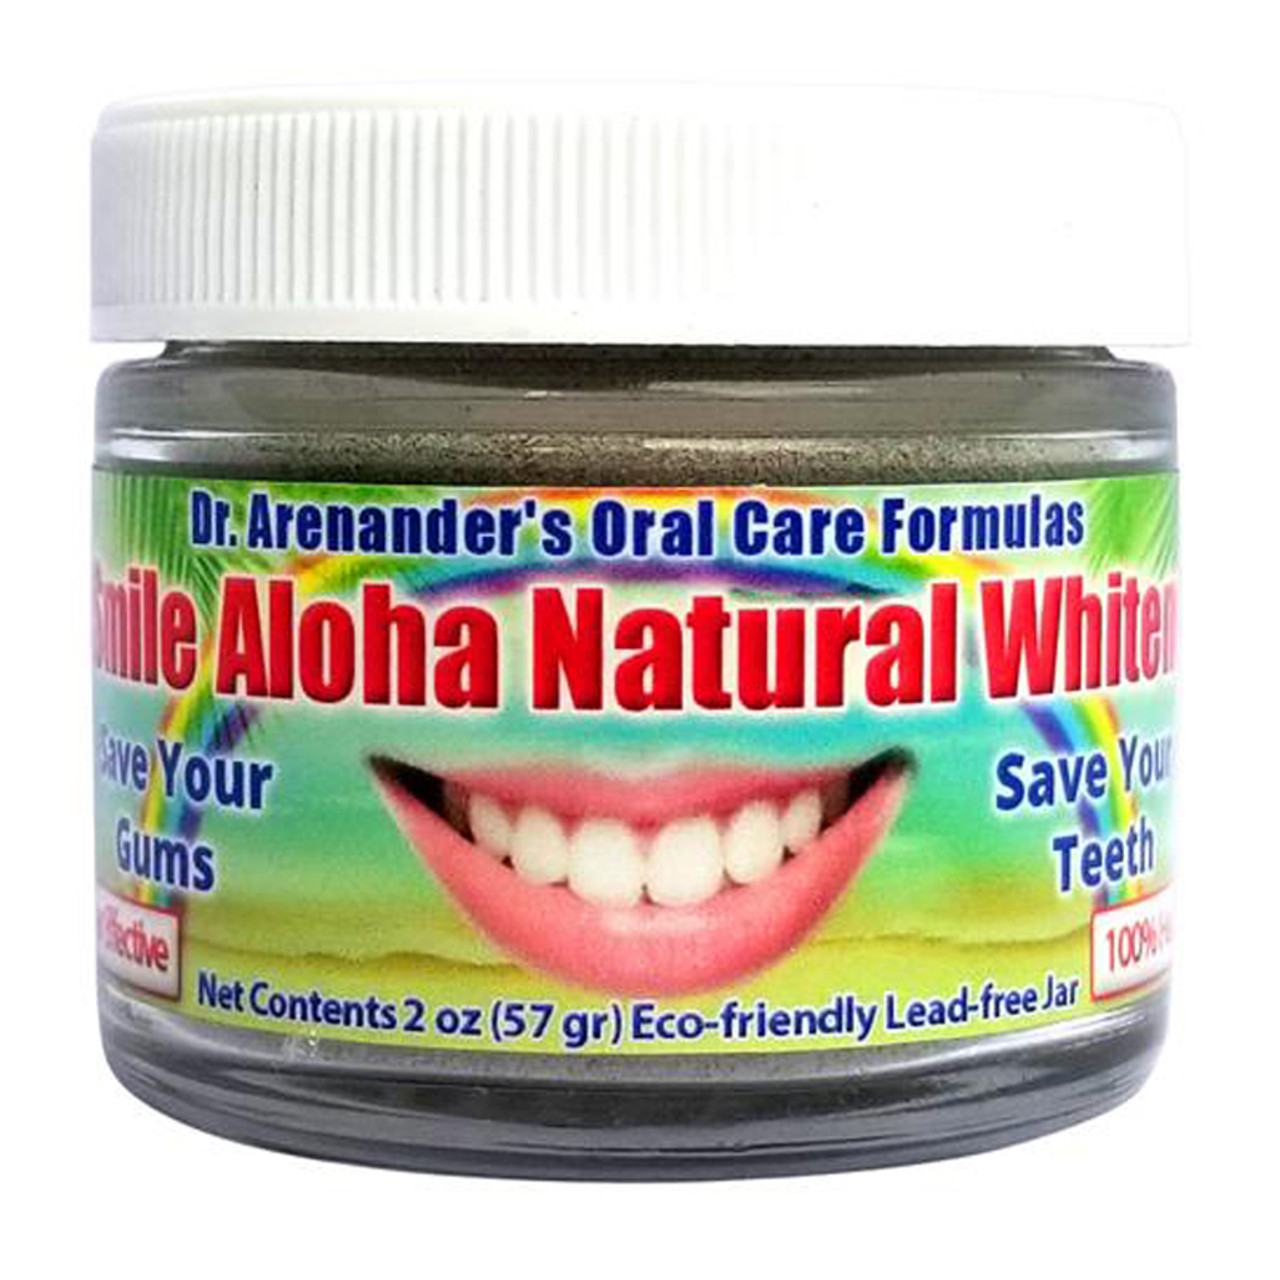 Aloha Organic Teeth Whitening Powder Activated Charcoal It Works